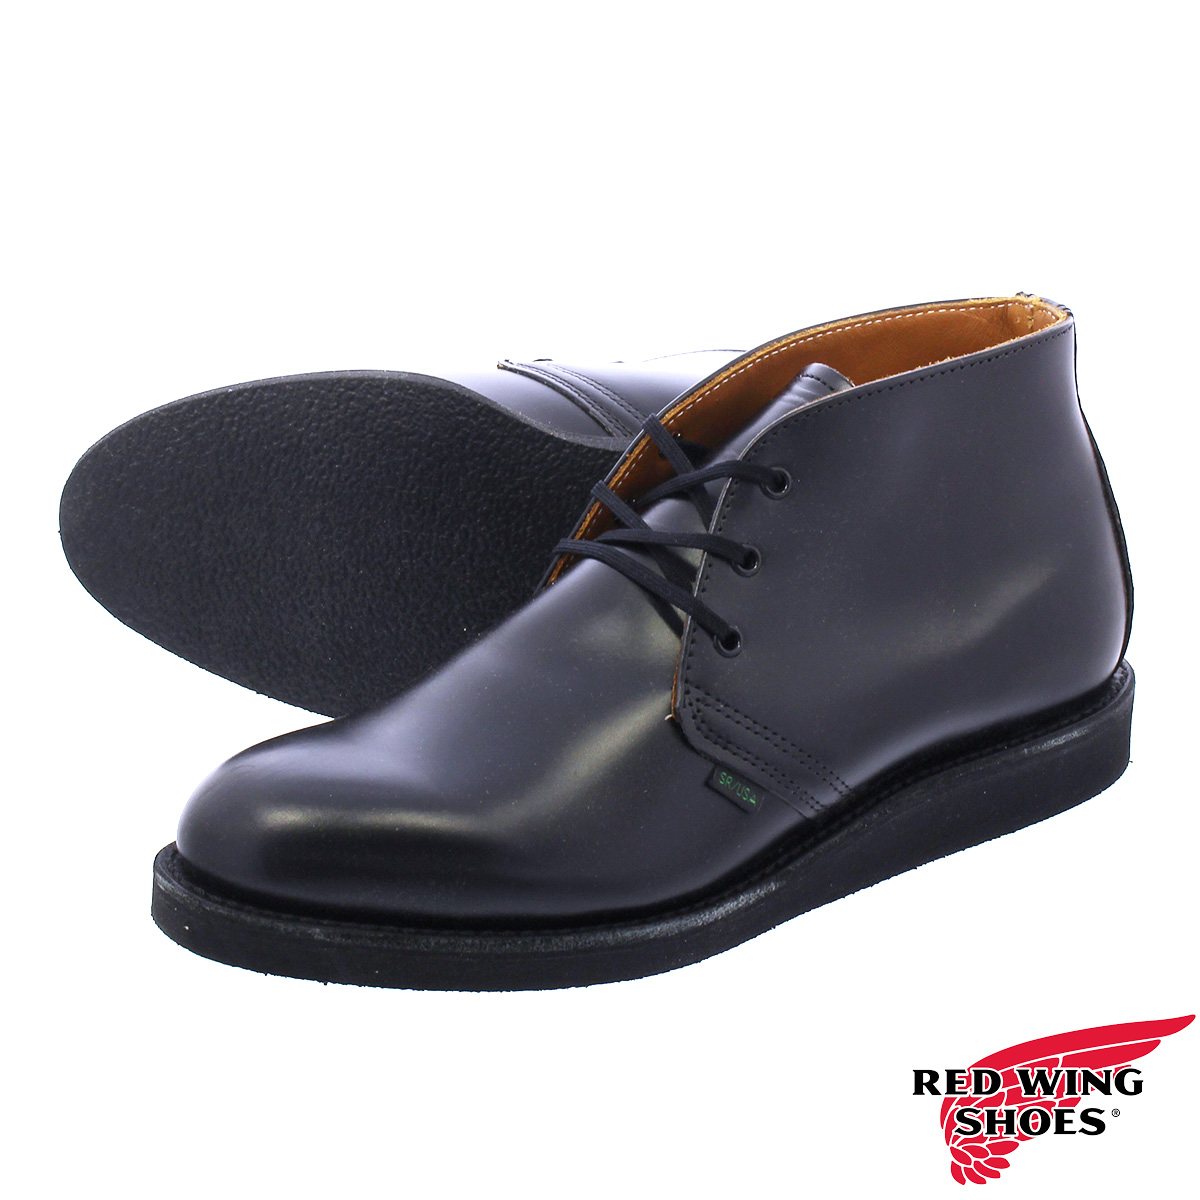 RED WING 9196 POSTMAN BOOT CHUKKA 【MADE IN U.S.A.】 レッドウイング ポストマン ブーツ チャッカ BLACK 【Dワイズ】